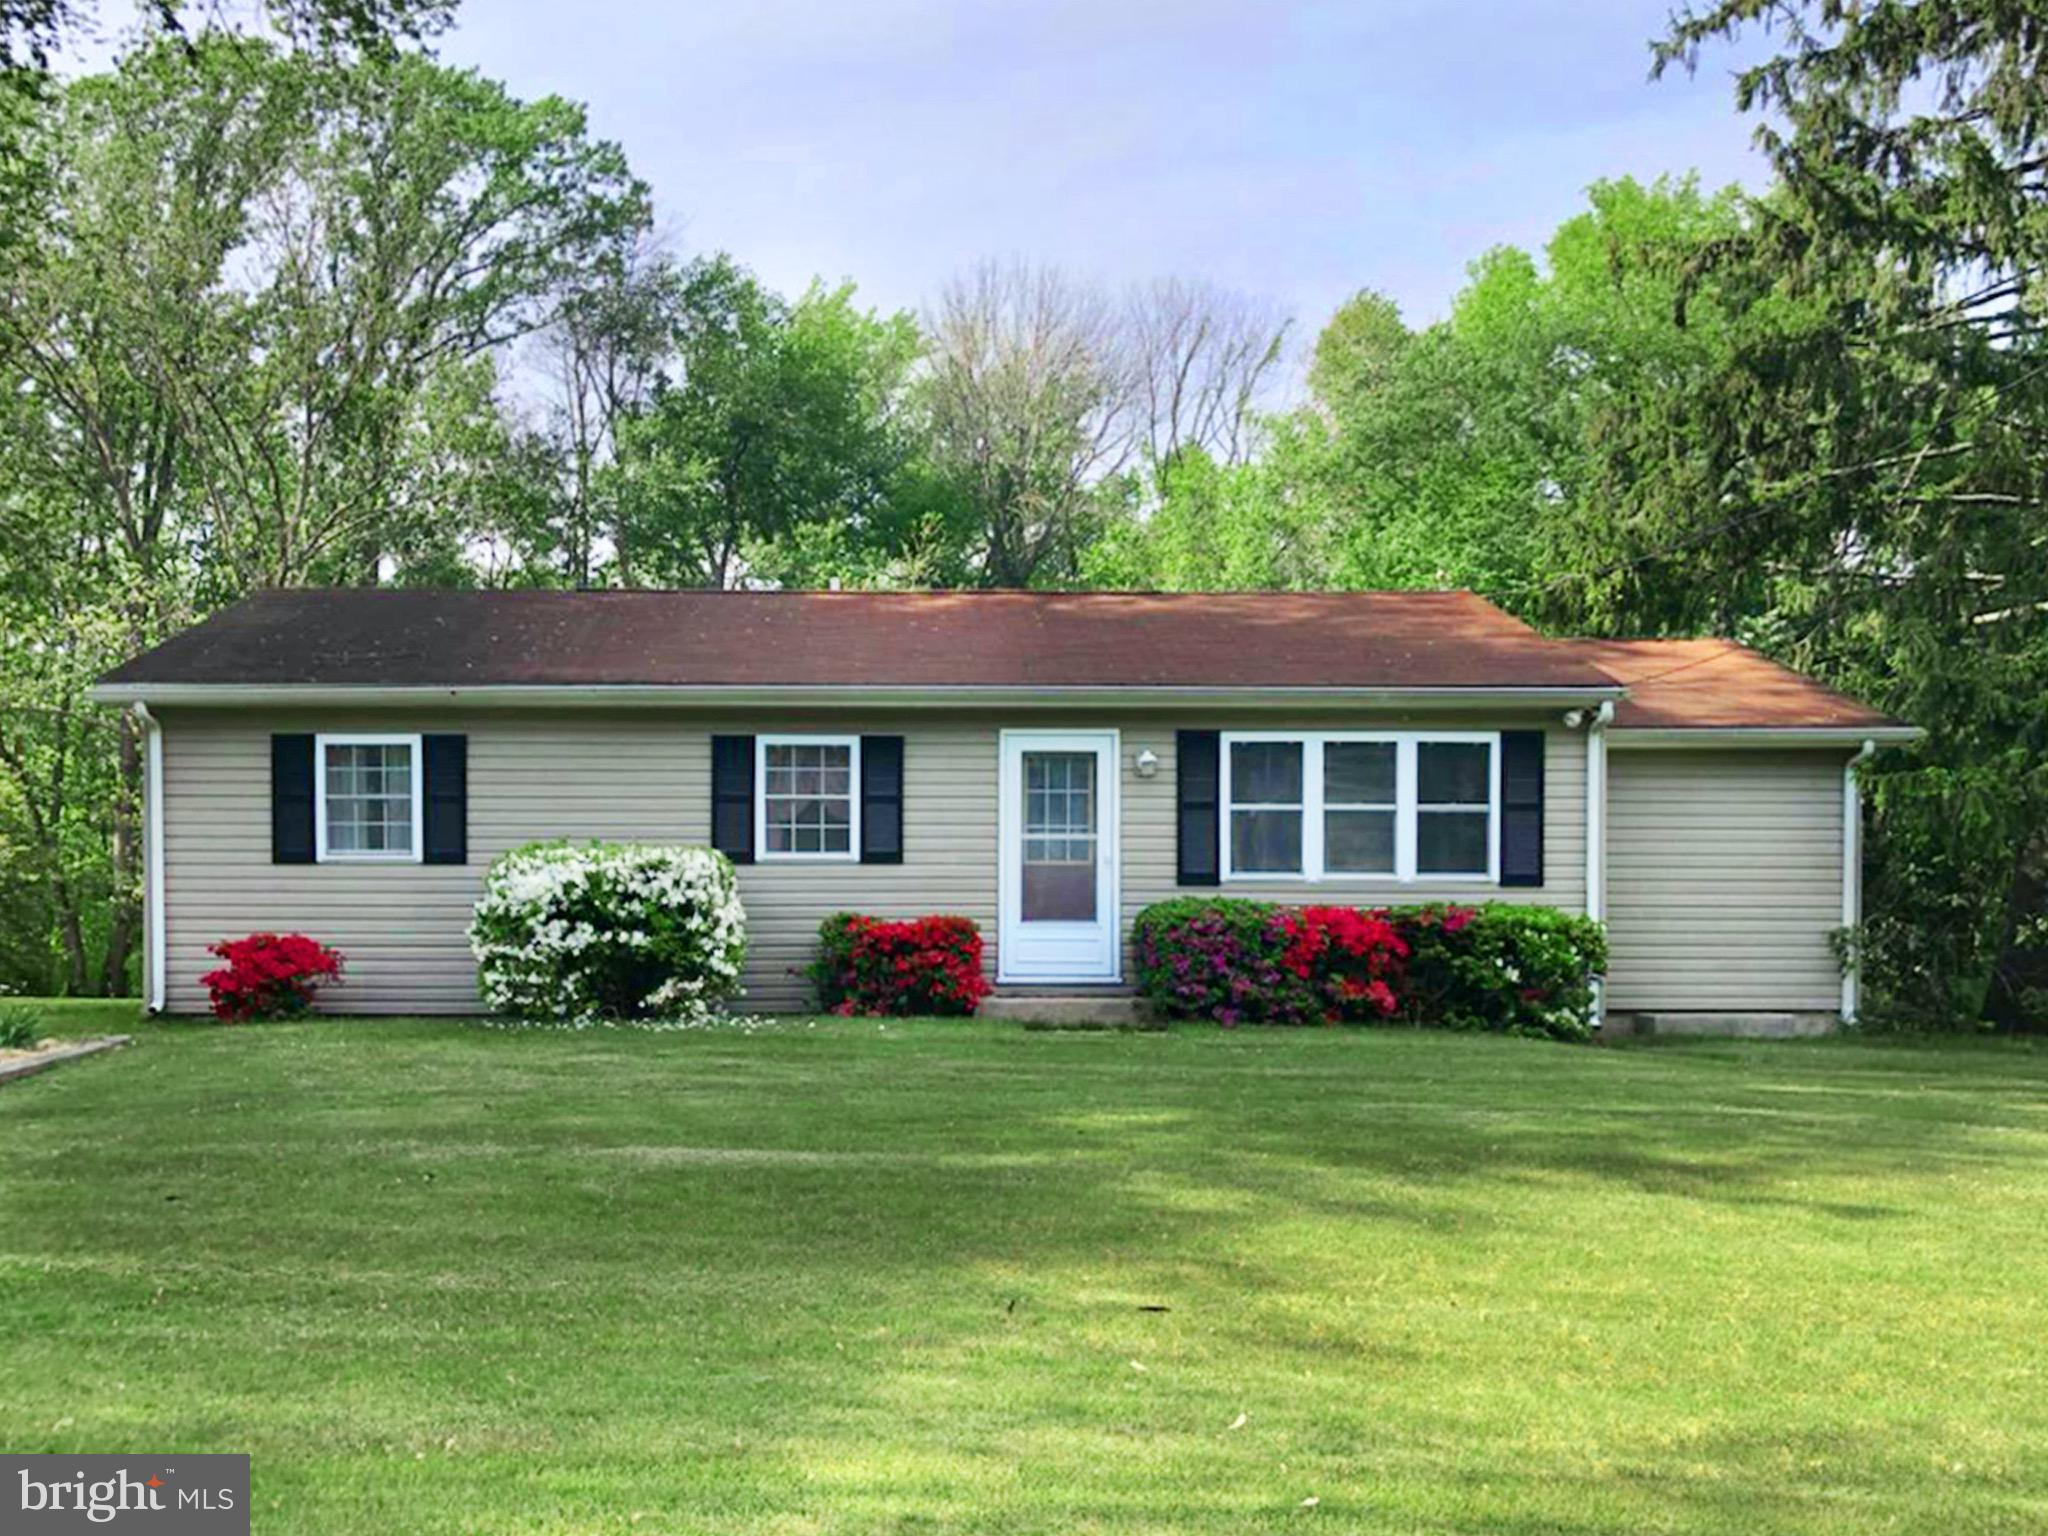 This lovely rancher with 3 bedrooms and 1 bath sits on over 1 acre just outside of Sudlersville, Mar